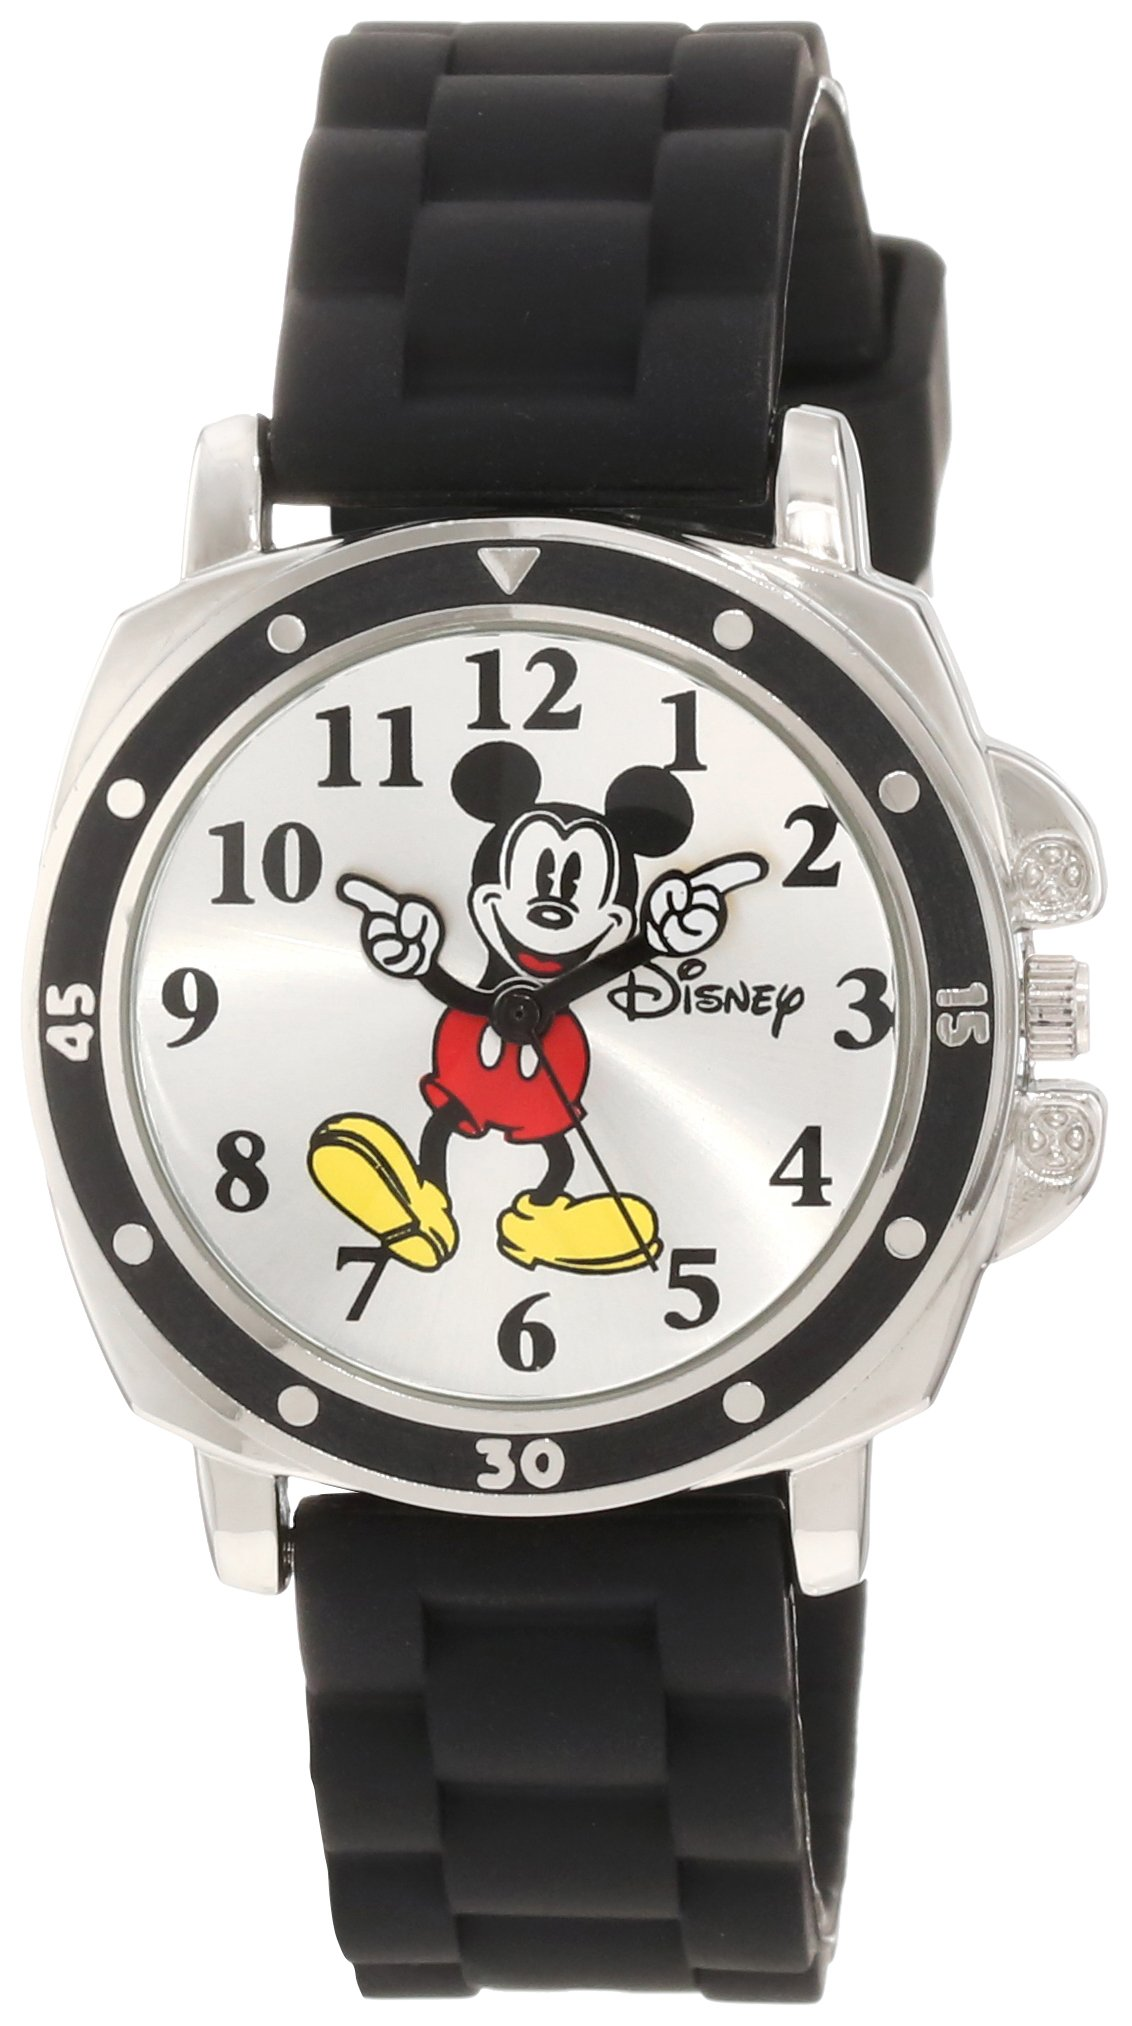 Disney Kids' MK1080 Mickey Mouse Watch with Black Rubber Strap by Disney